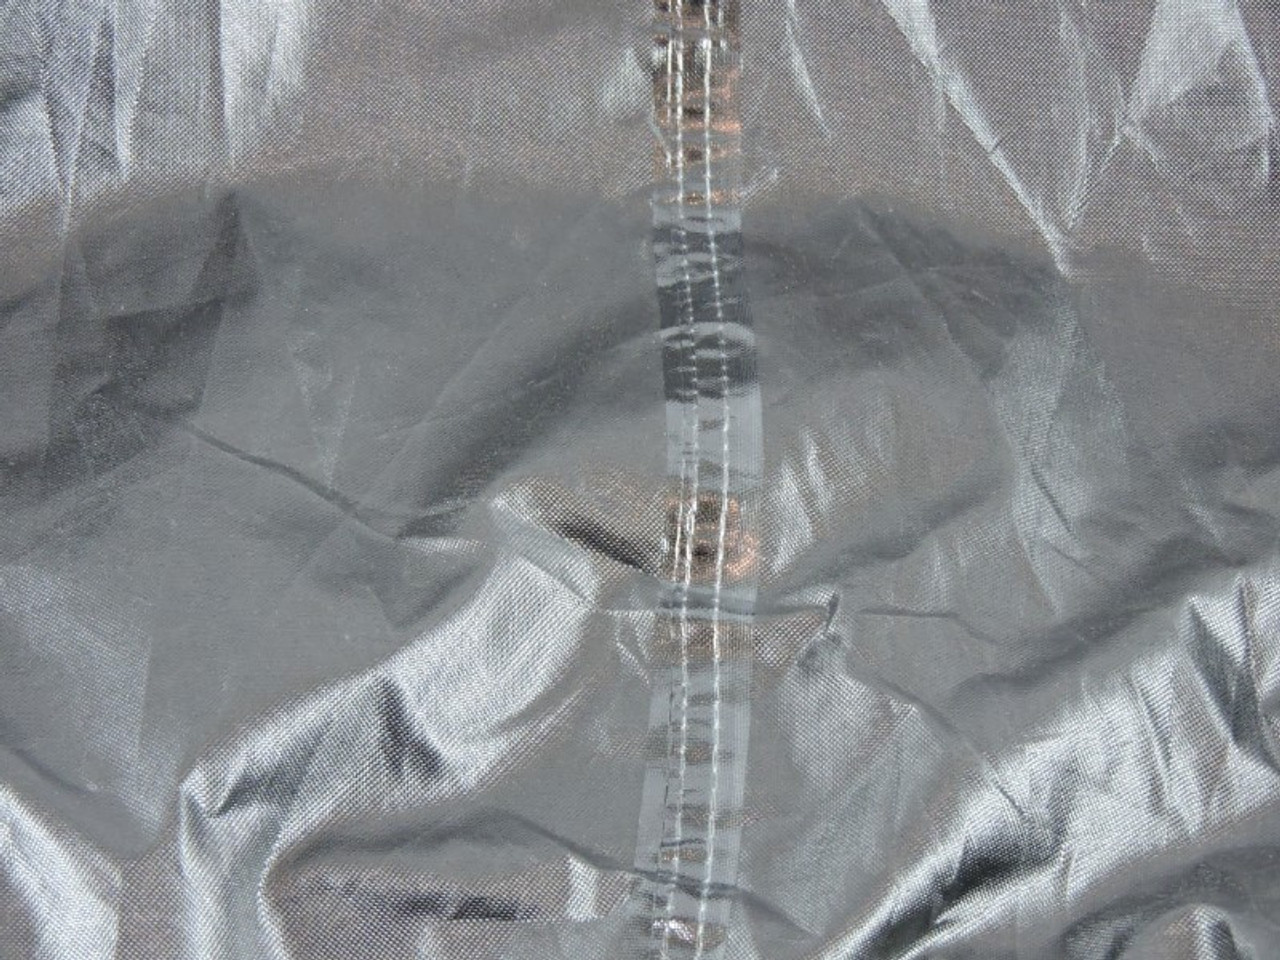 Upper fully waterproofed inner layer and taped seams extra sureness from water seepage.